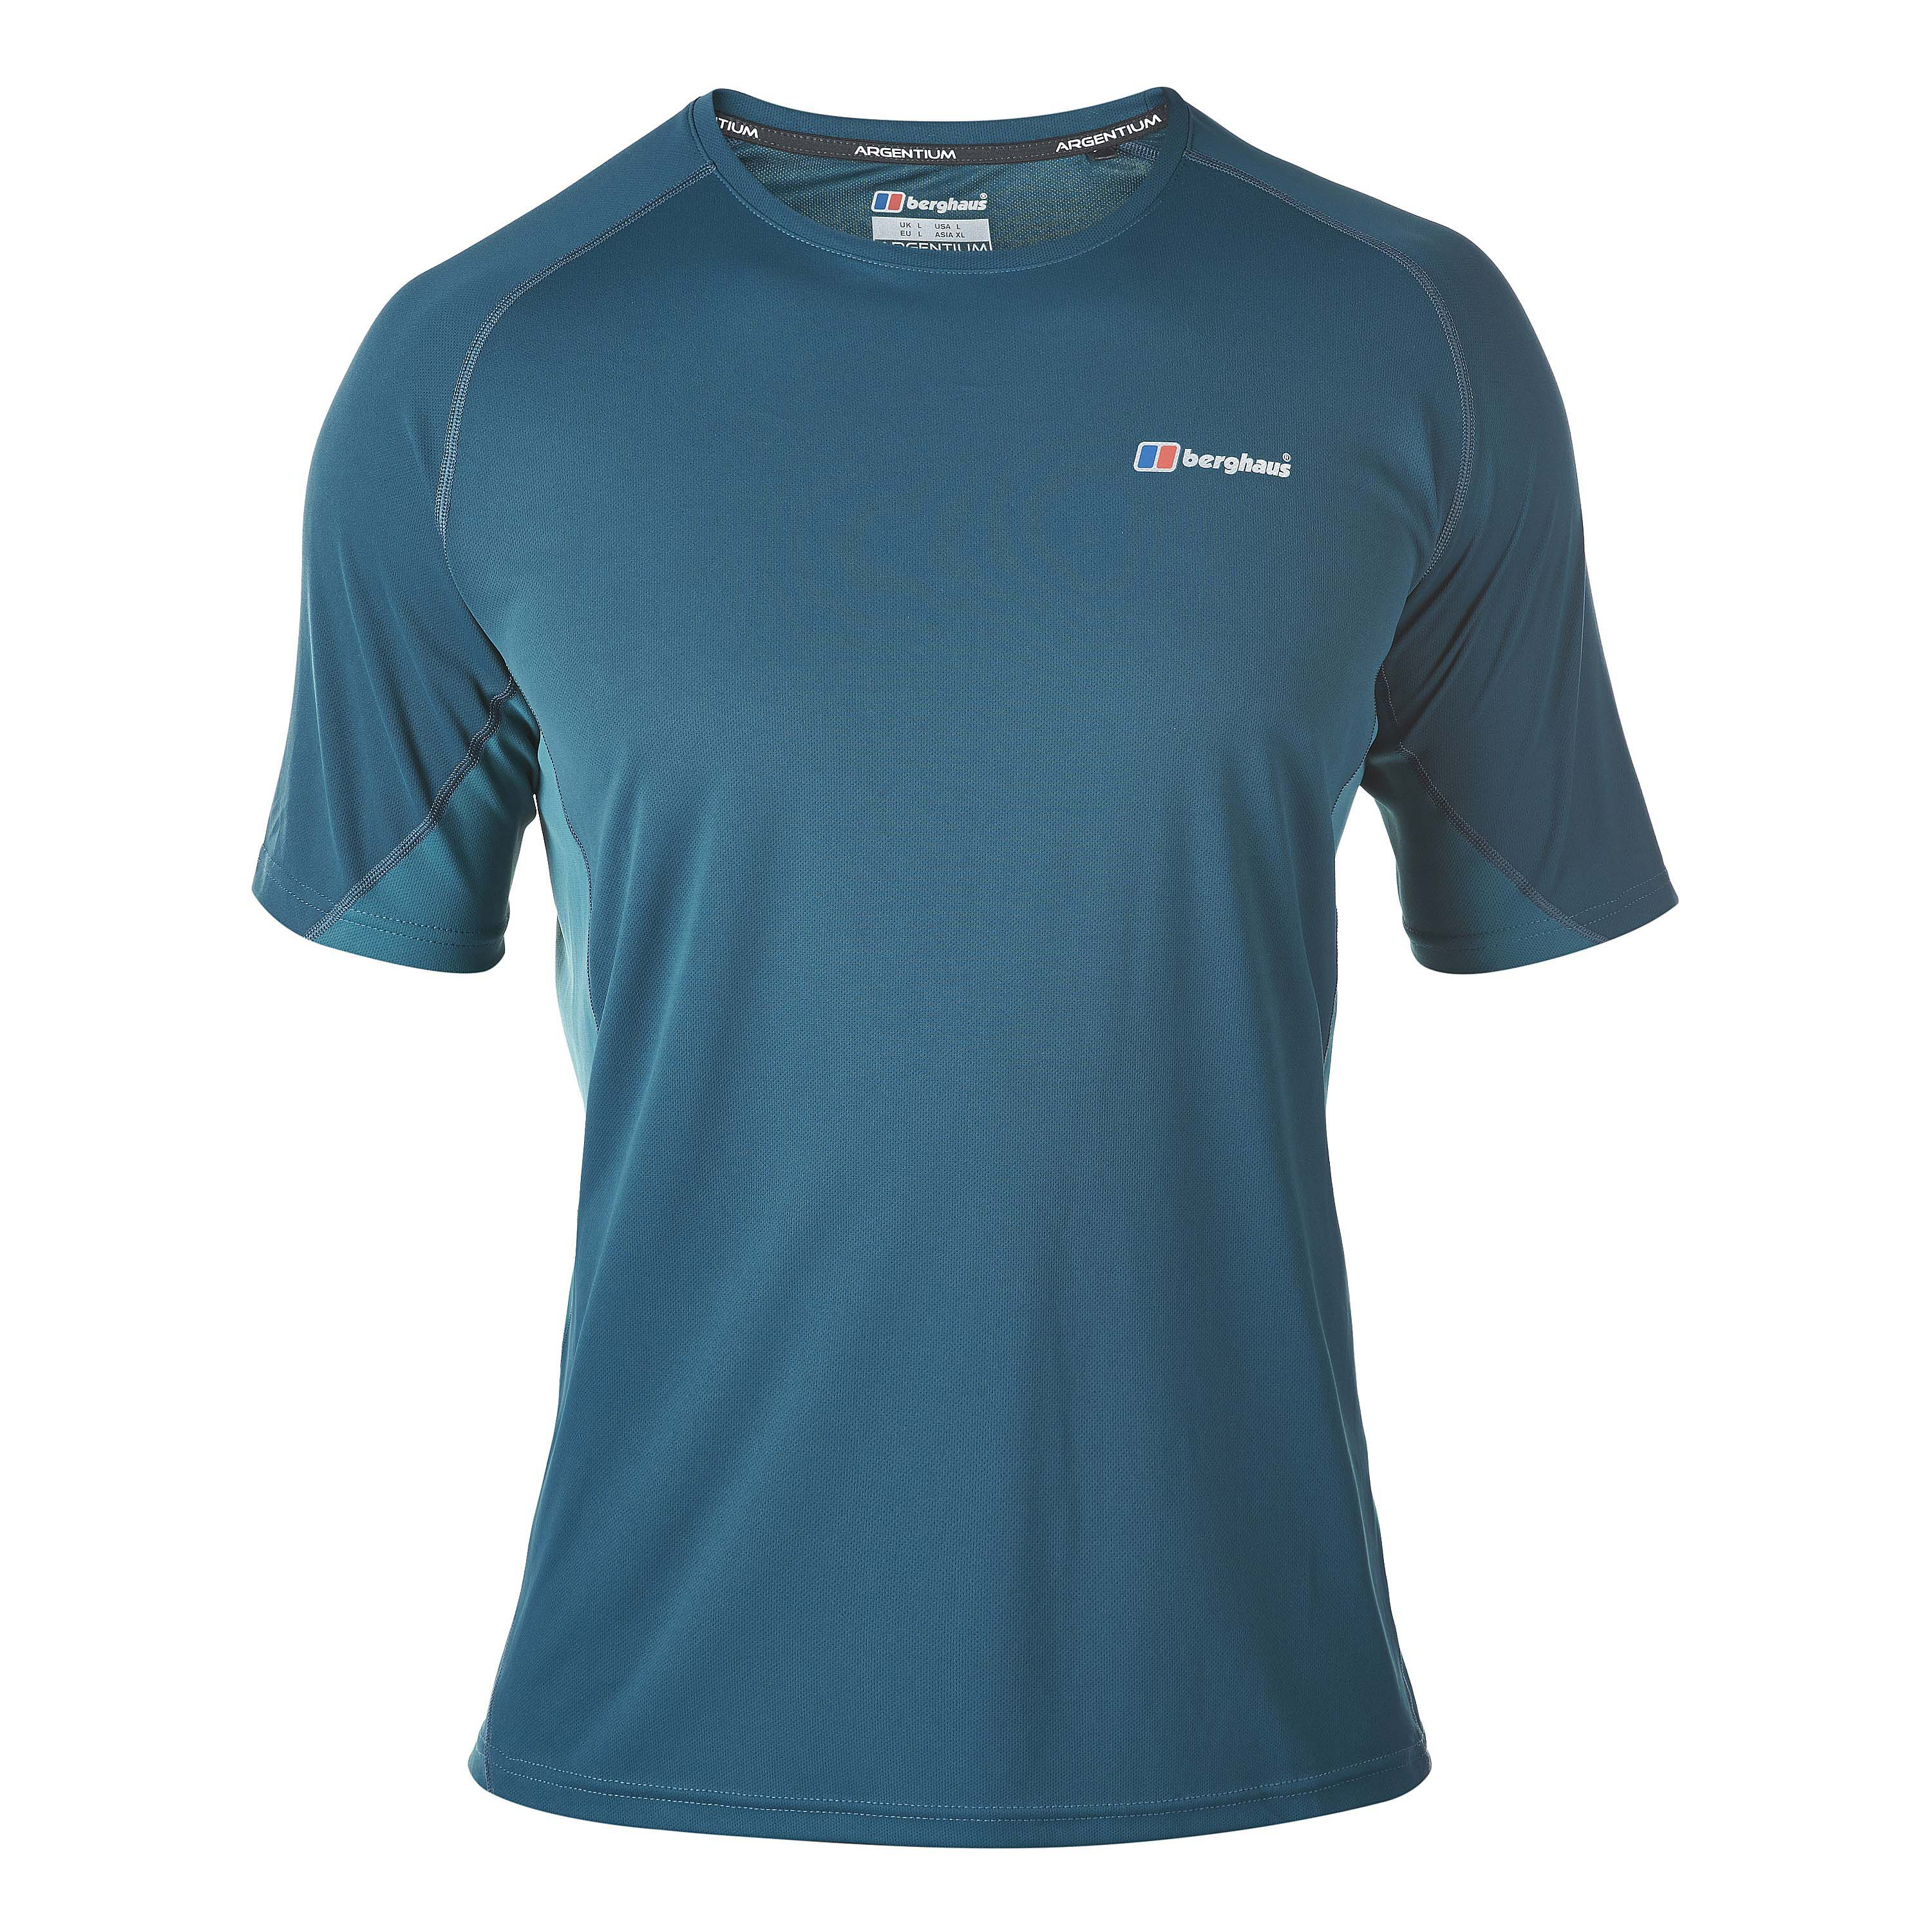 Berghaus T-Shirt Crew Neck Technical reflecting pond/blue coral